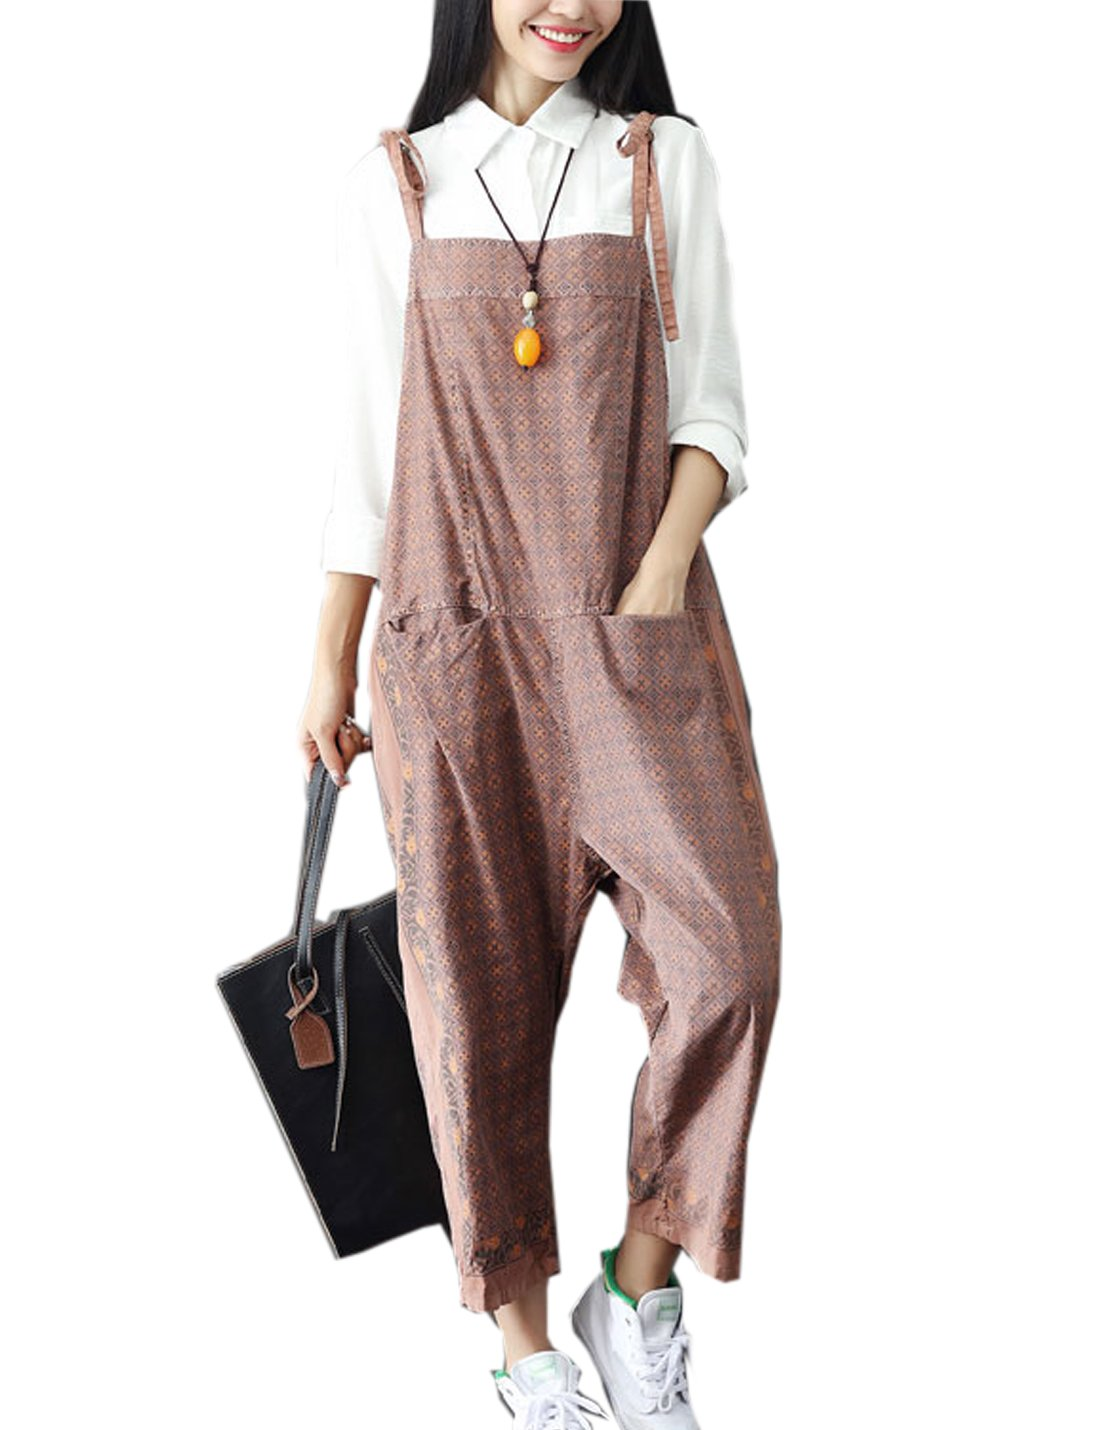 Flygo Women's Cotton Casual Printed Baggy Bib Overalls Harem Pants Jumpsuit Rompers (One Size, Style 2 Coffee)